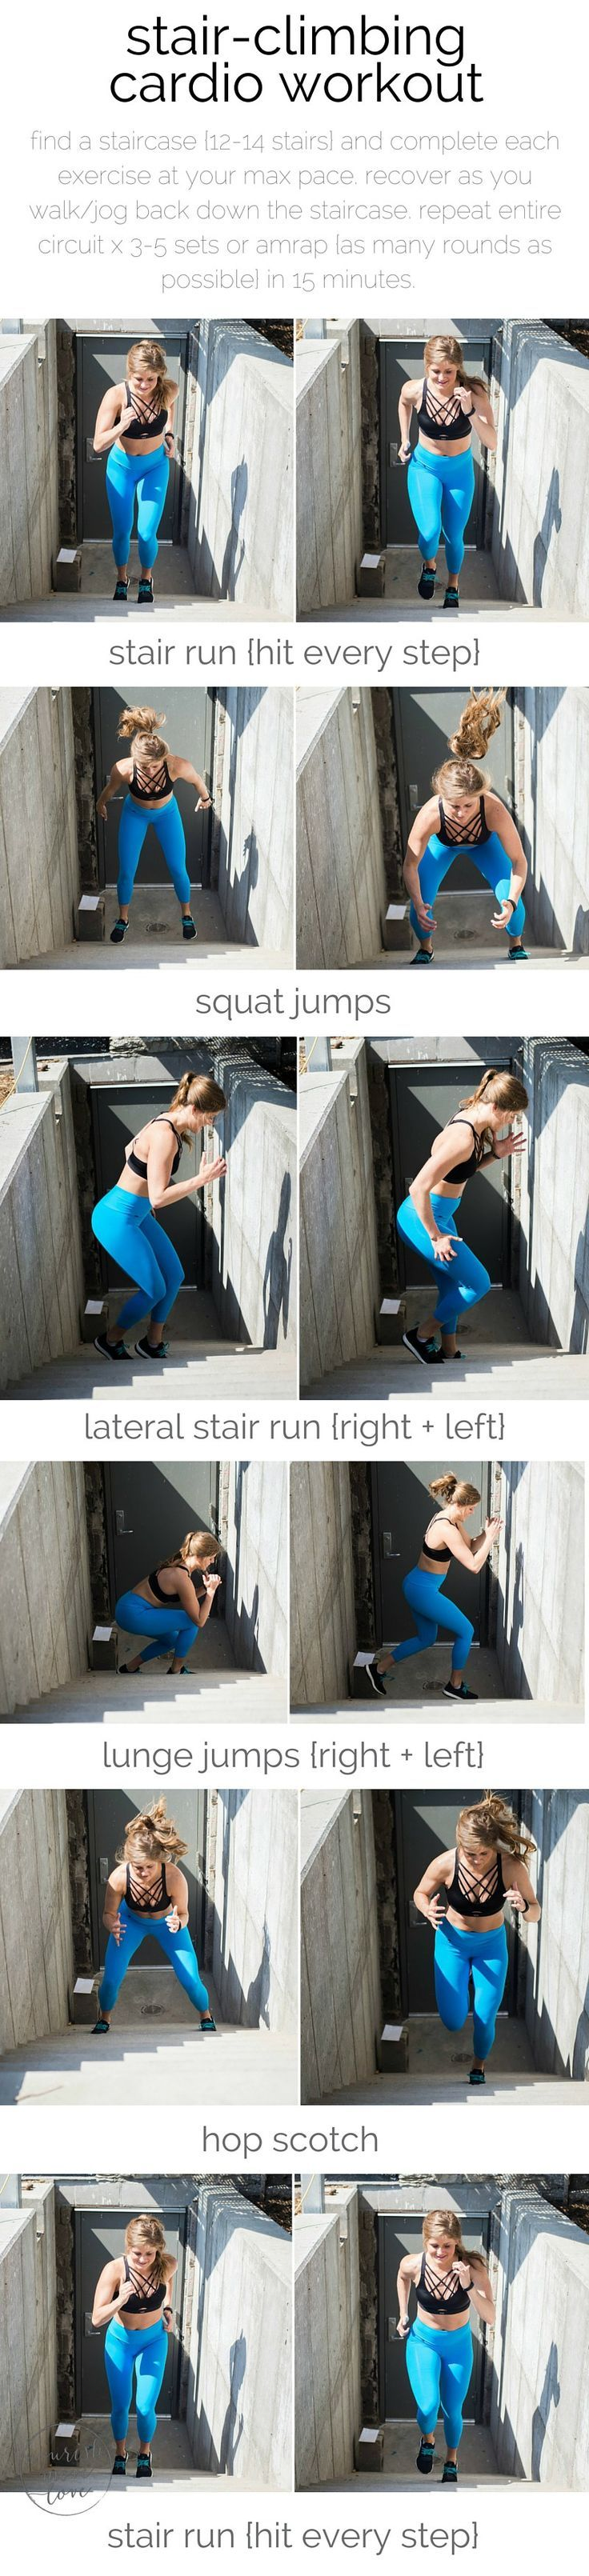 stair-climbing cardio workout   the ultimate stair-climbing, cardio workout for serious fitness gains {and a lifted booty}.   http://www.nourishmovelove.com